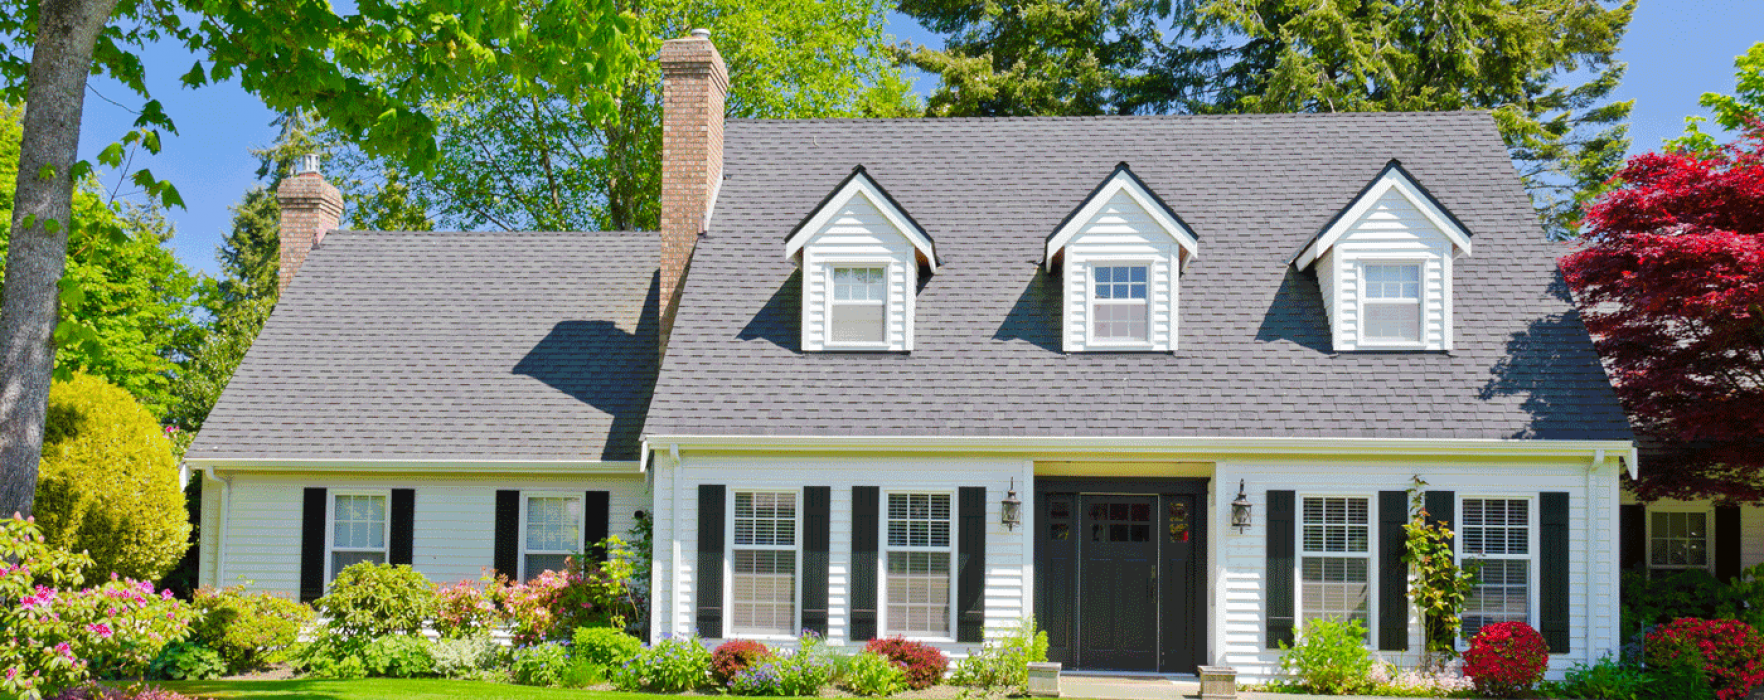 Curb Appeal Mistakes To Avoid Better Homes And Gardens Real Estate Life